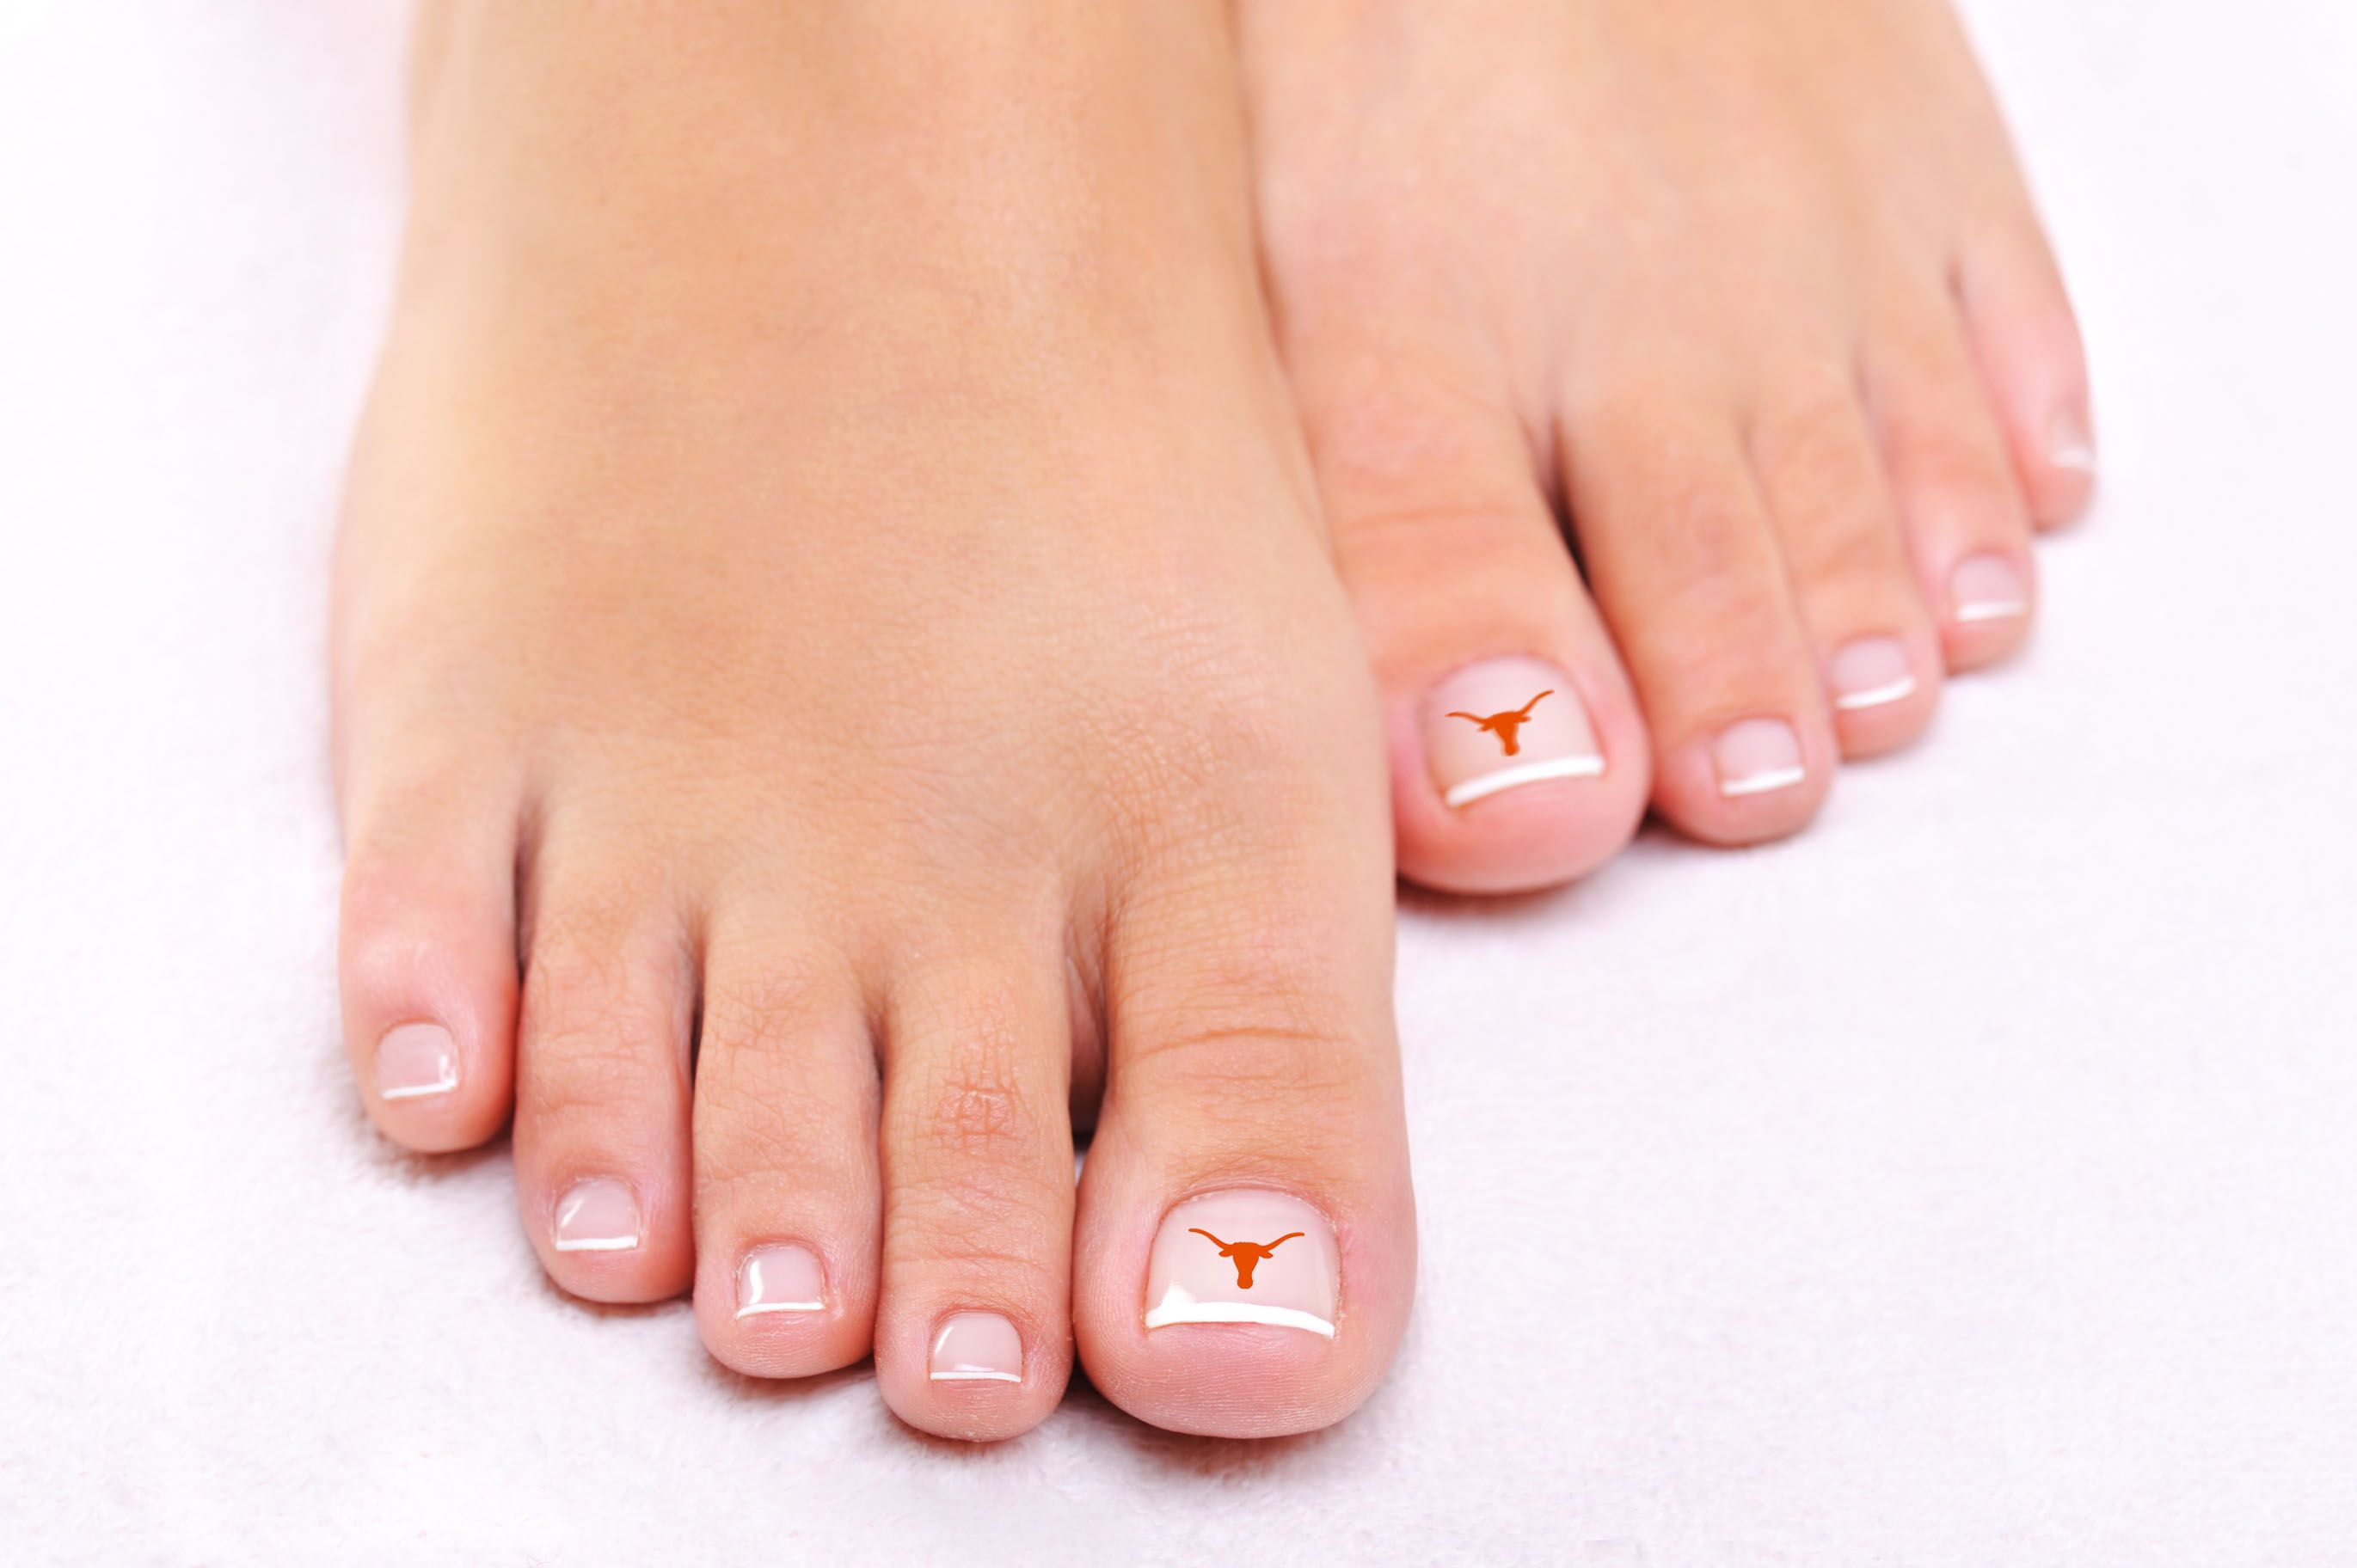 Be A Longhorn Fan From Head To Toes Literally Fingernail Fungus Treatment Nail Fungus Treatment Toenail Fungus Treatment